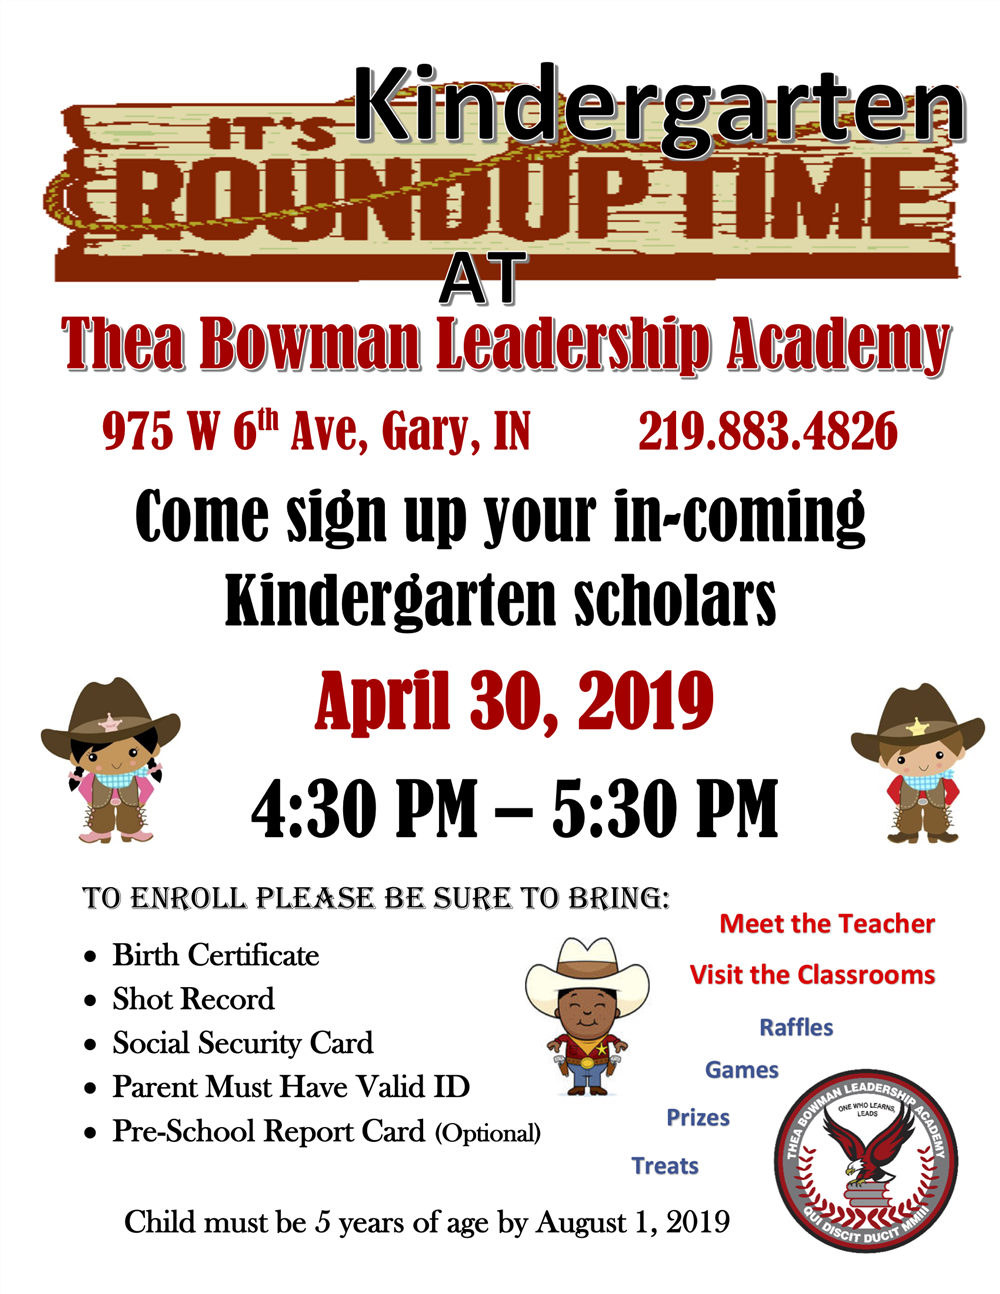 Thea Bowman Leadership Academy to Host 2nd Kinder Roundup April 30